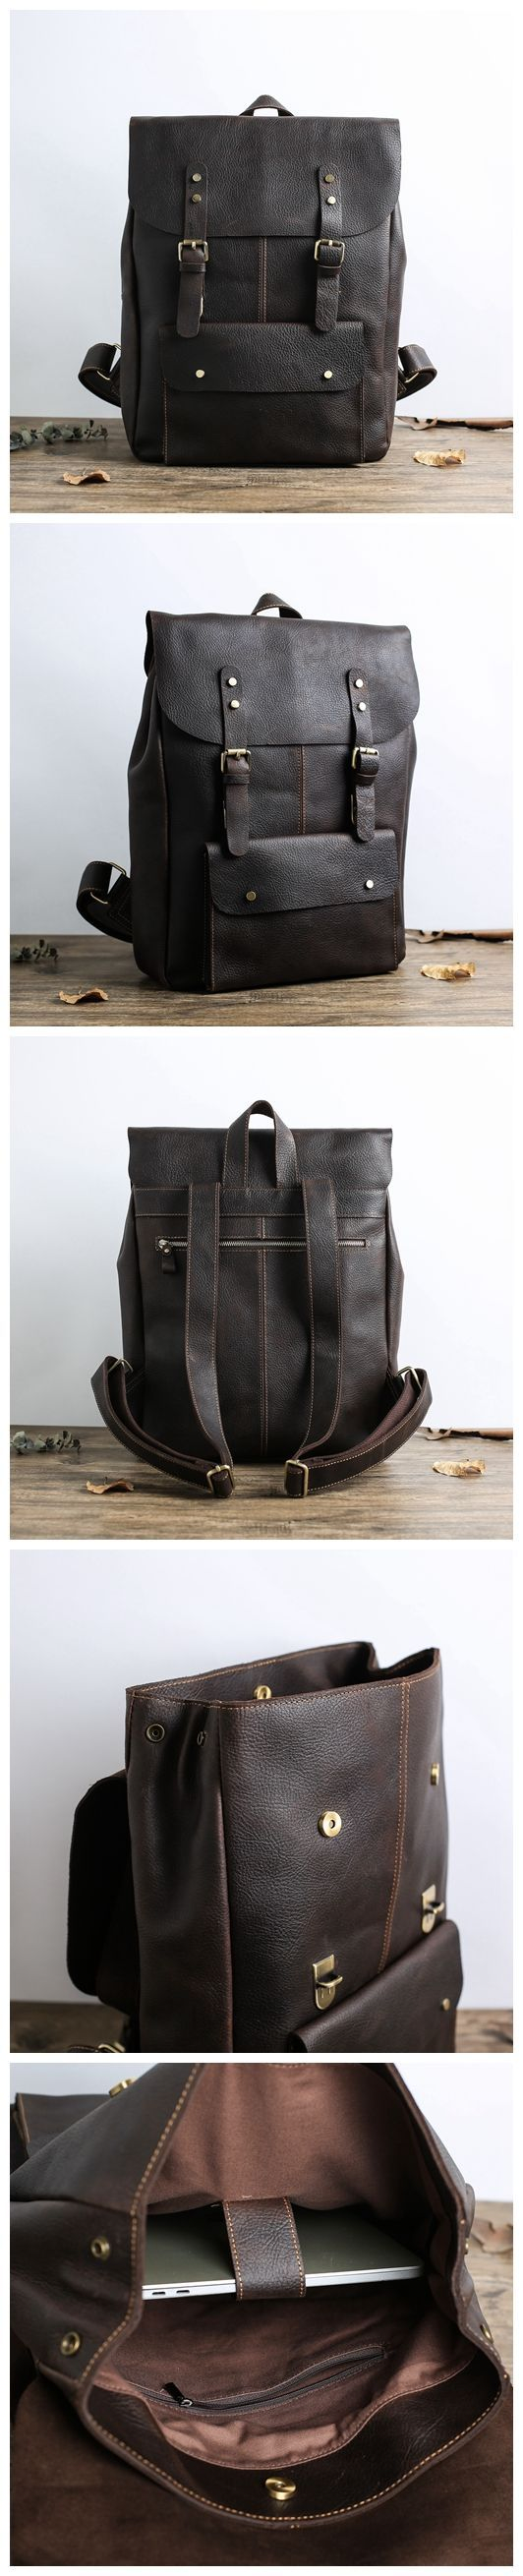 78247a524e Vintage Leather School Backpack Casual Travel Backpack Laptop Bag in Dark  Coffee 9452  159.00 USD  399.00